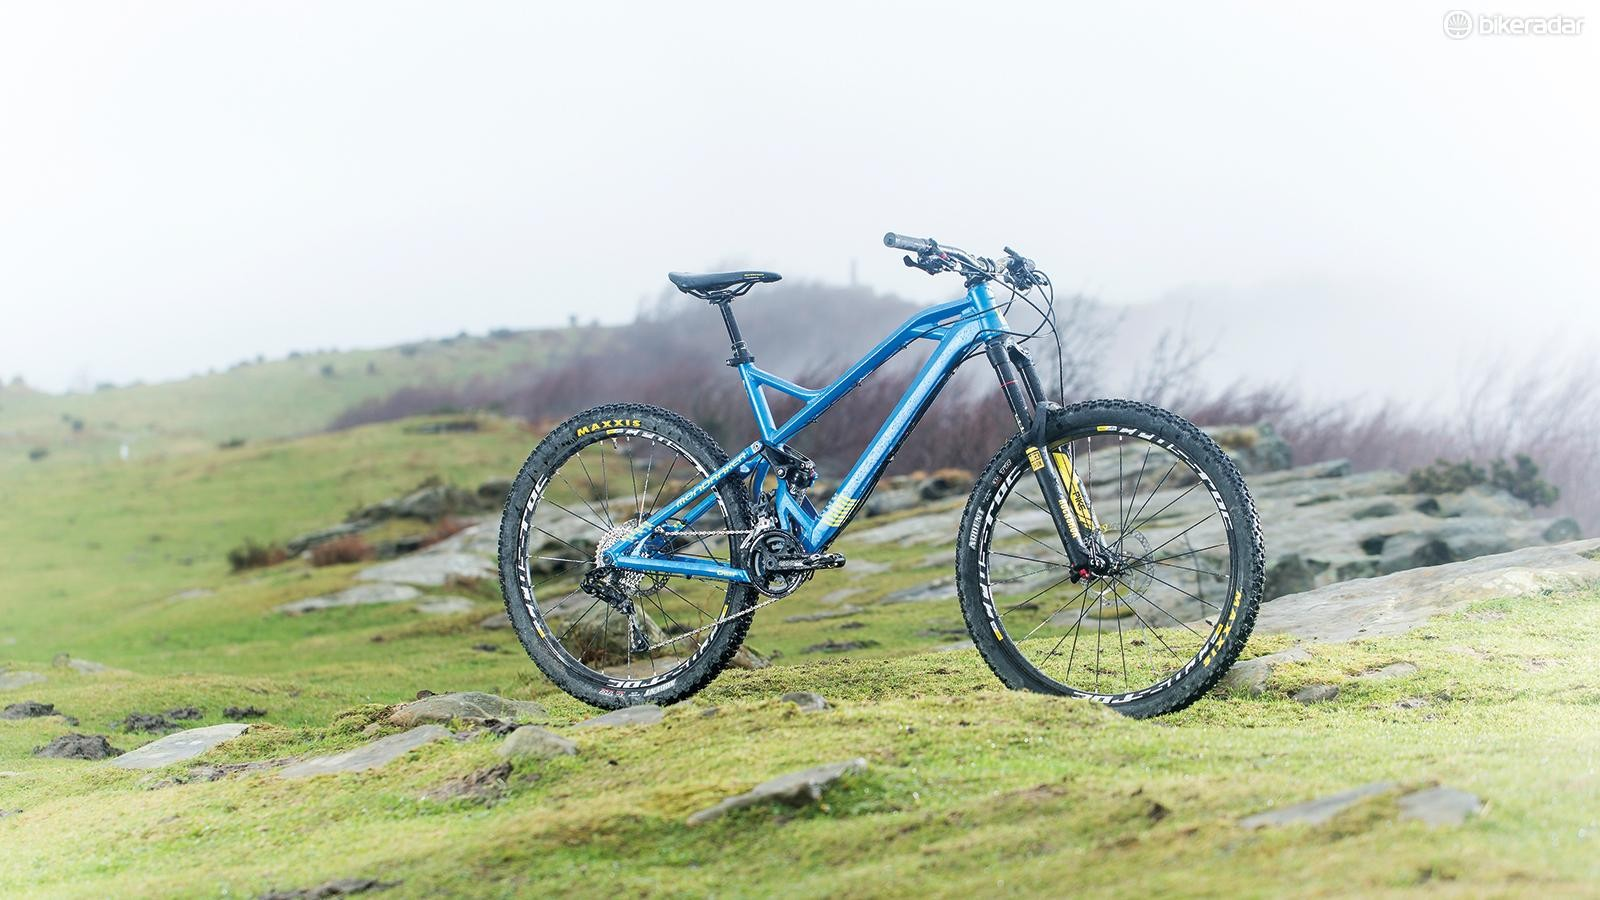 Mondraker Foxy XR –not everyone likes the looks, but it sure gets the job done